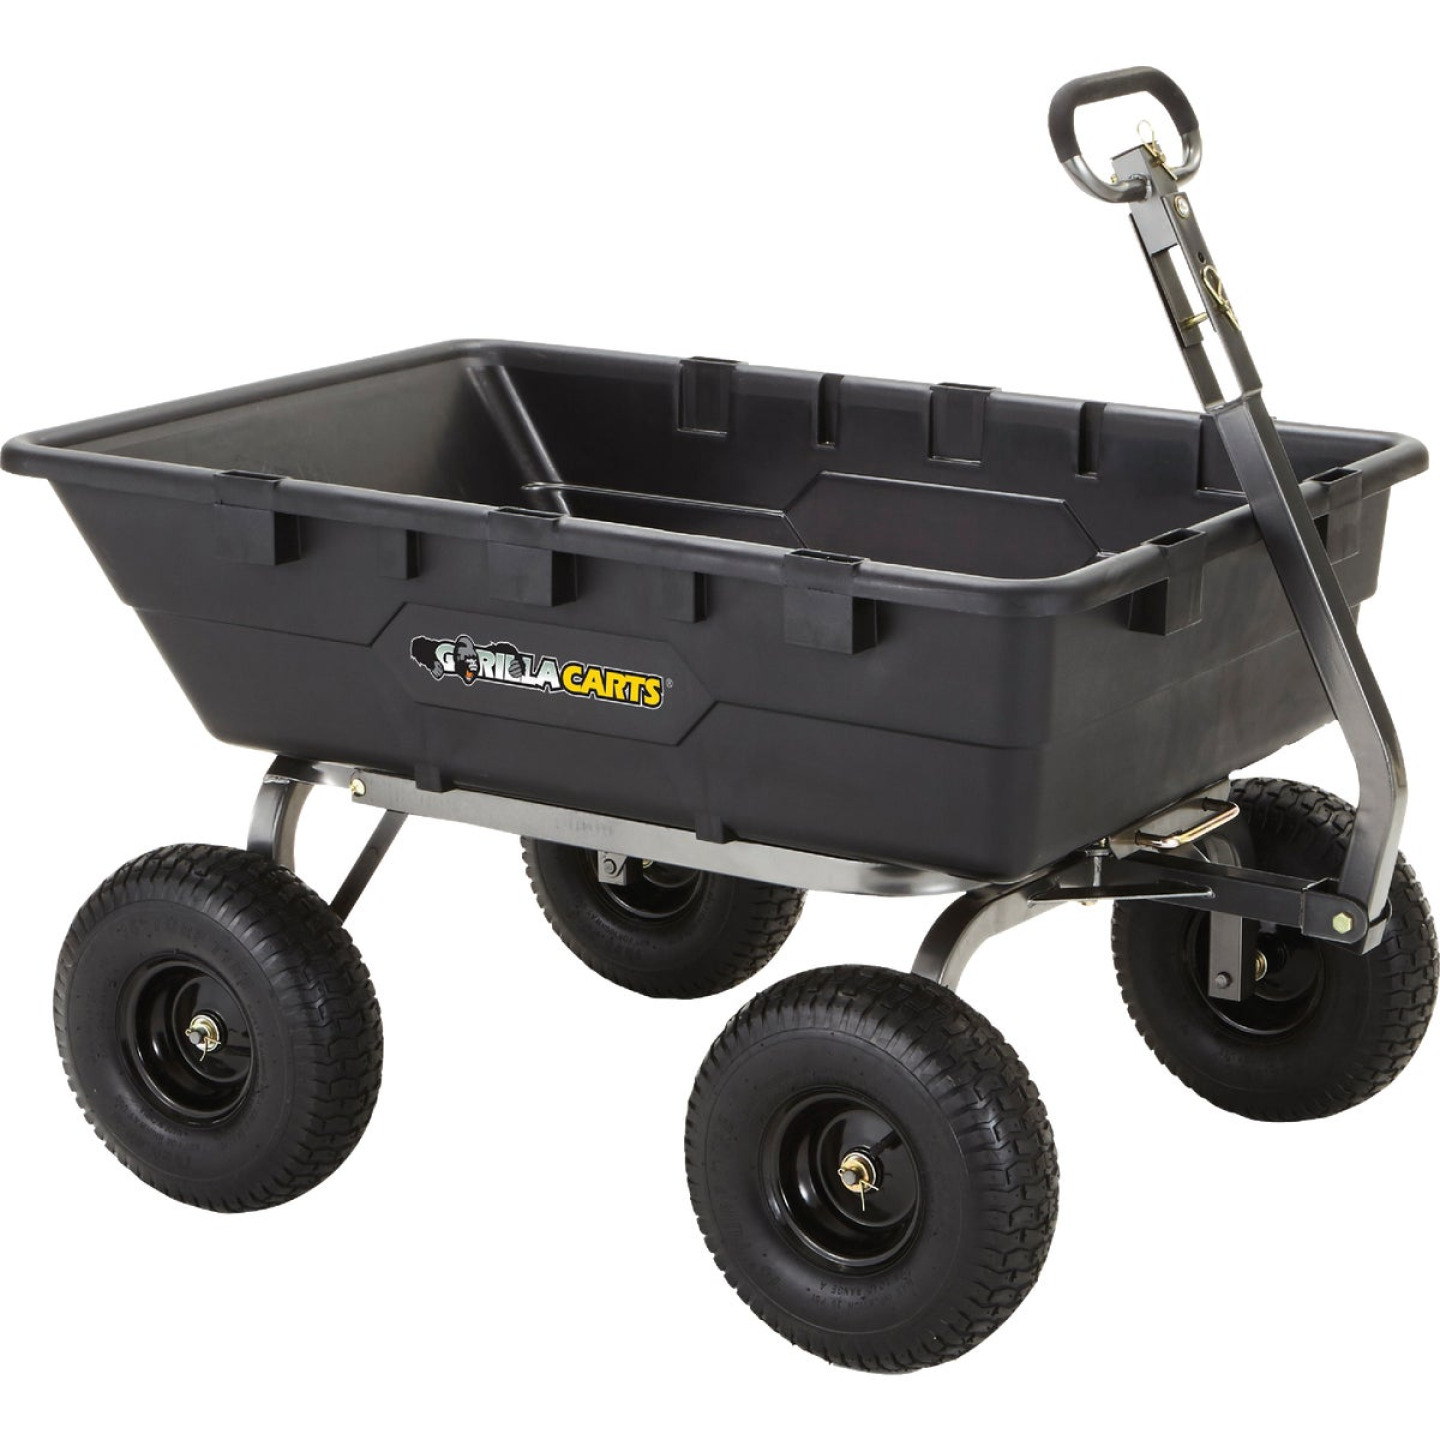 Gorilla Carts 10 Cu. Ft. 1500 Lb. Poly Tow-Behind Garden Cart Image 1